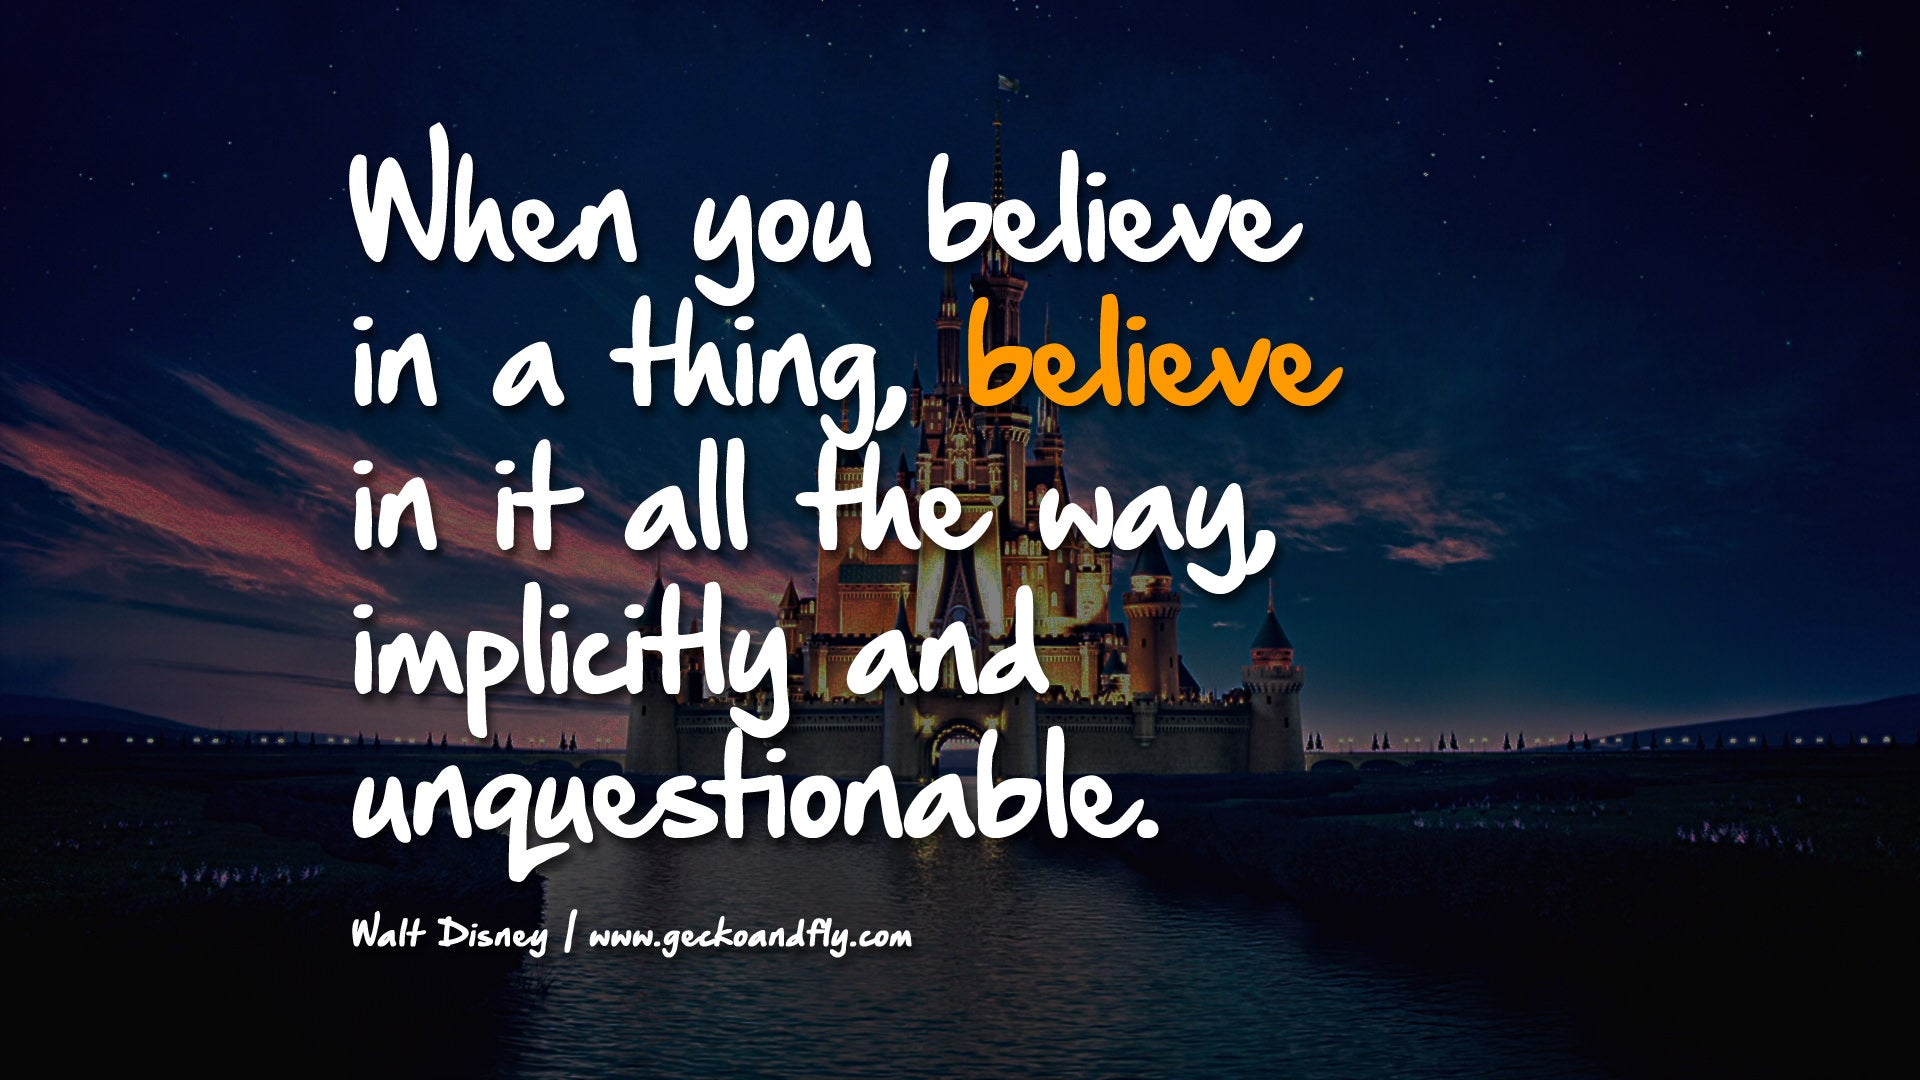 Walt Disney Quotes About Life 8 Walt Disney Quotes That Are Actually Fake  Gizmodo Australia